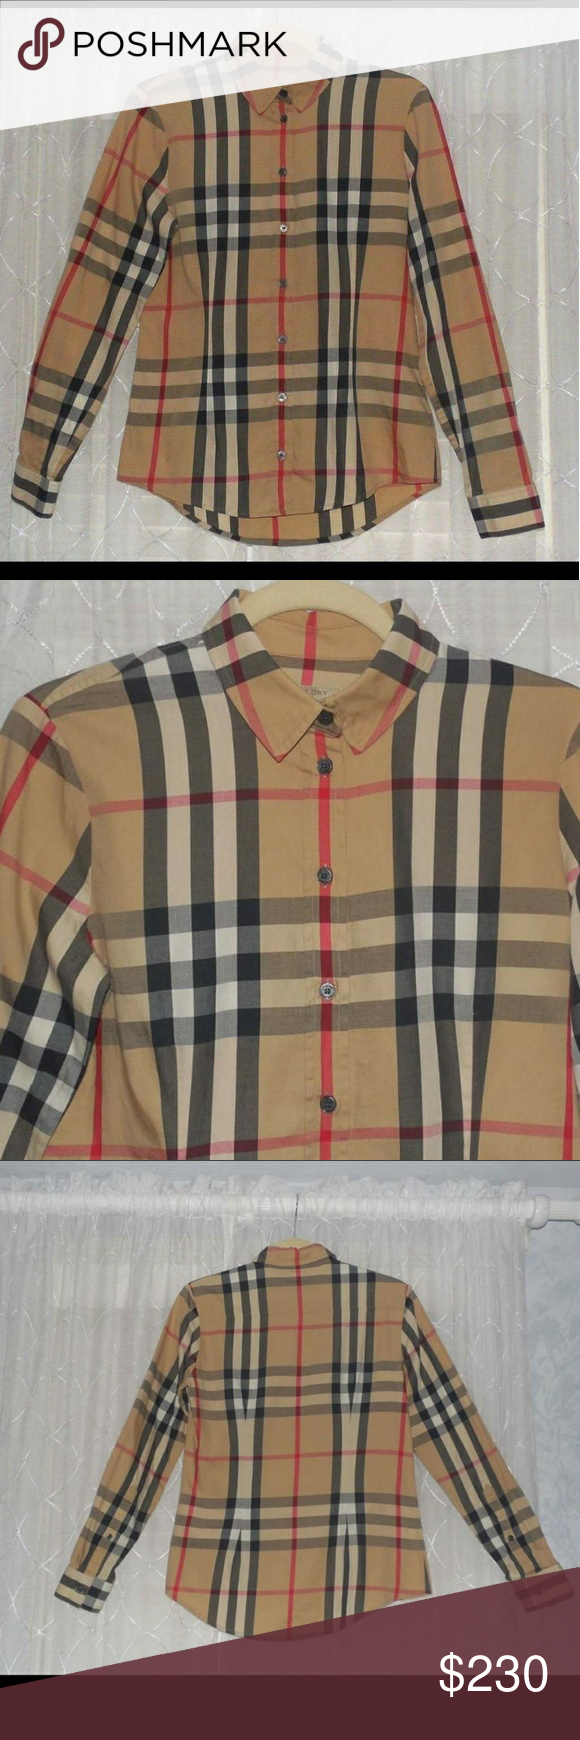 4446802b7a4 Burberry Brit Women s Shirt Nova Check Size Small EVERYONE WILL KNOW IT S  BURBERRY!